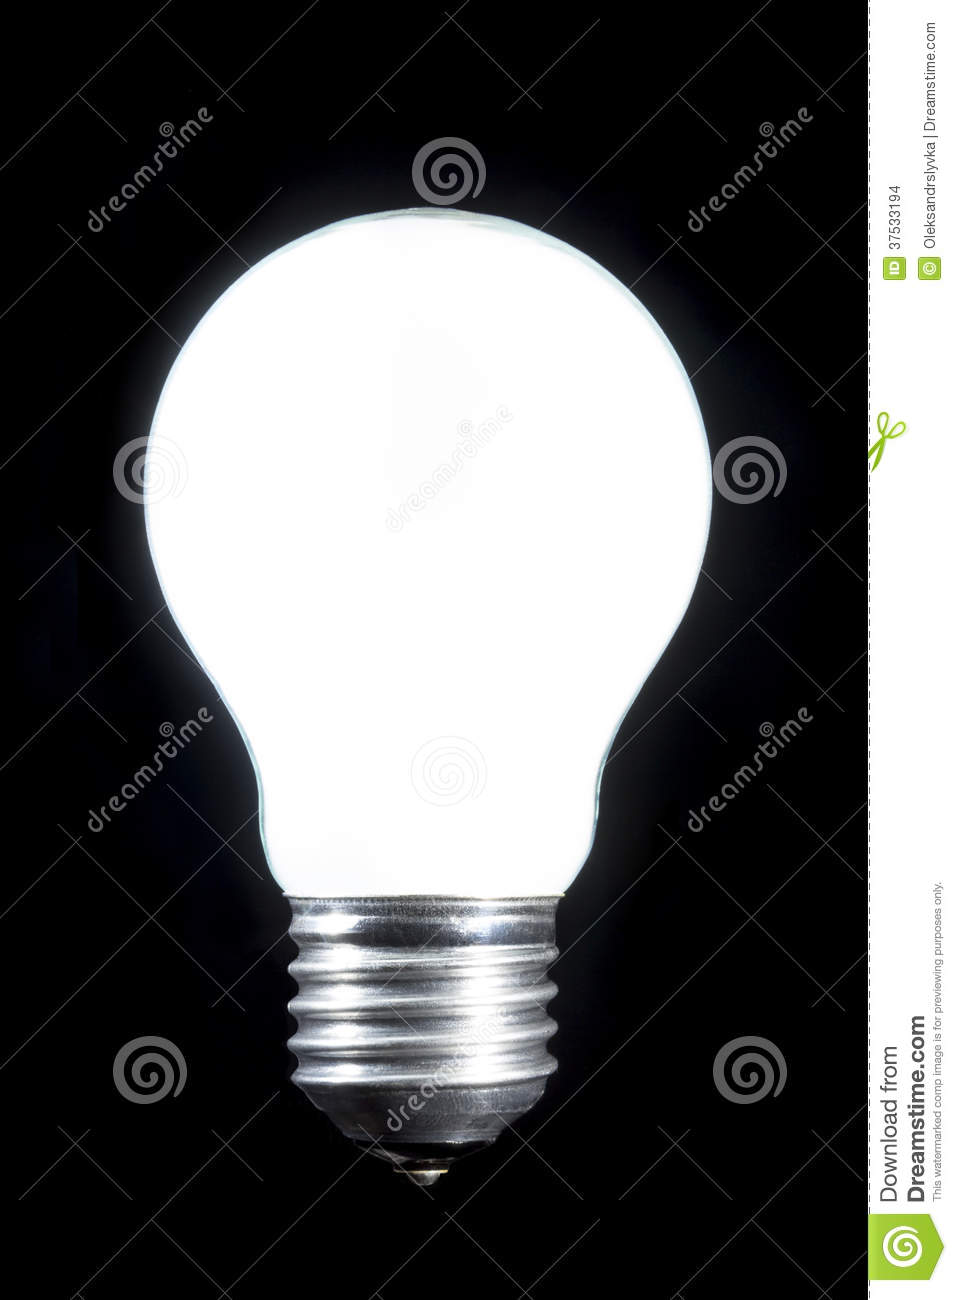 Burning Bright White Light Bulb Stock Photo  Image 37533194